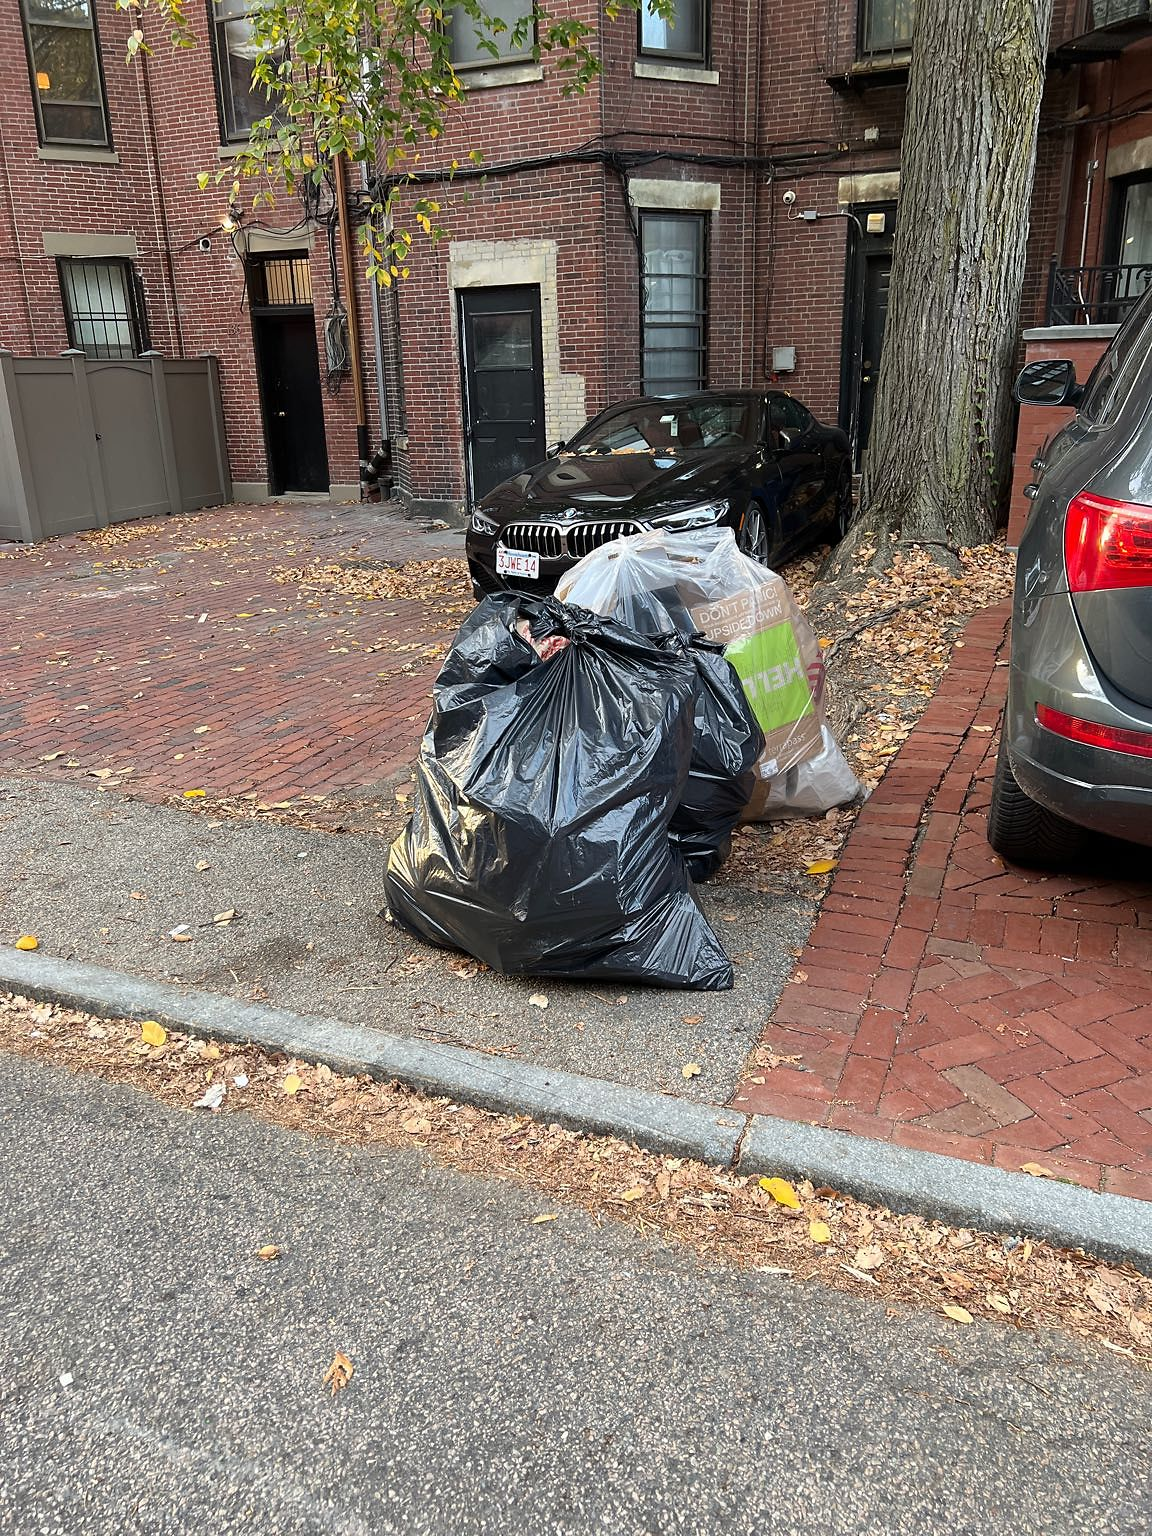 Garbage is out early on Sunday - rats are opening bags and running around the bags. Please do something about this. The garbage is put out early every time and even though the night before is allowed later on, this situation of garbage without bins is…